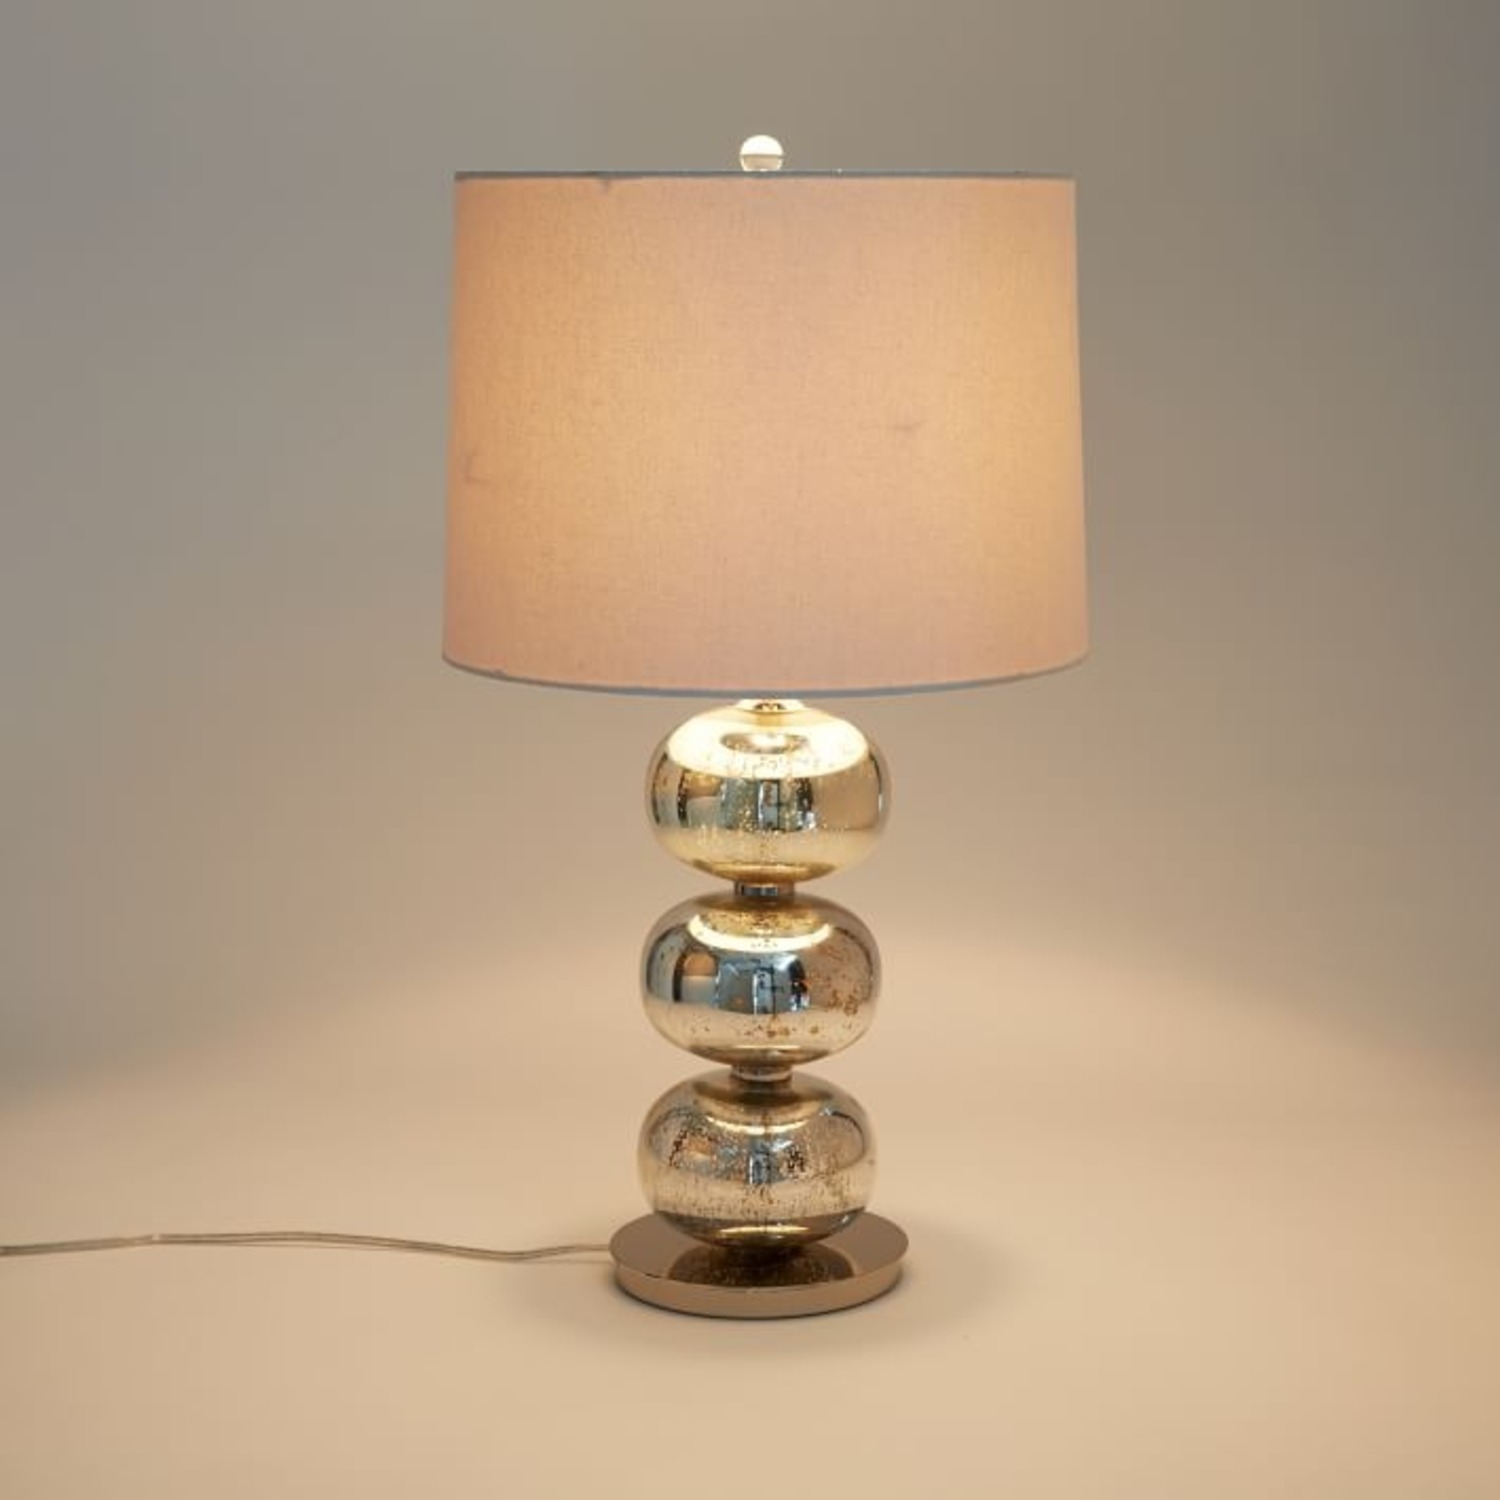 West Elm Abacus Mercury Glass Table Lamp - image-1